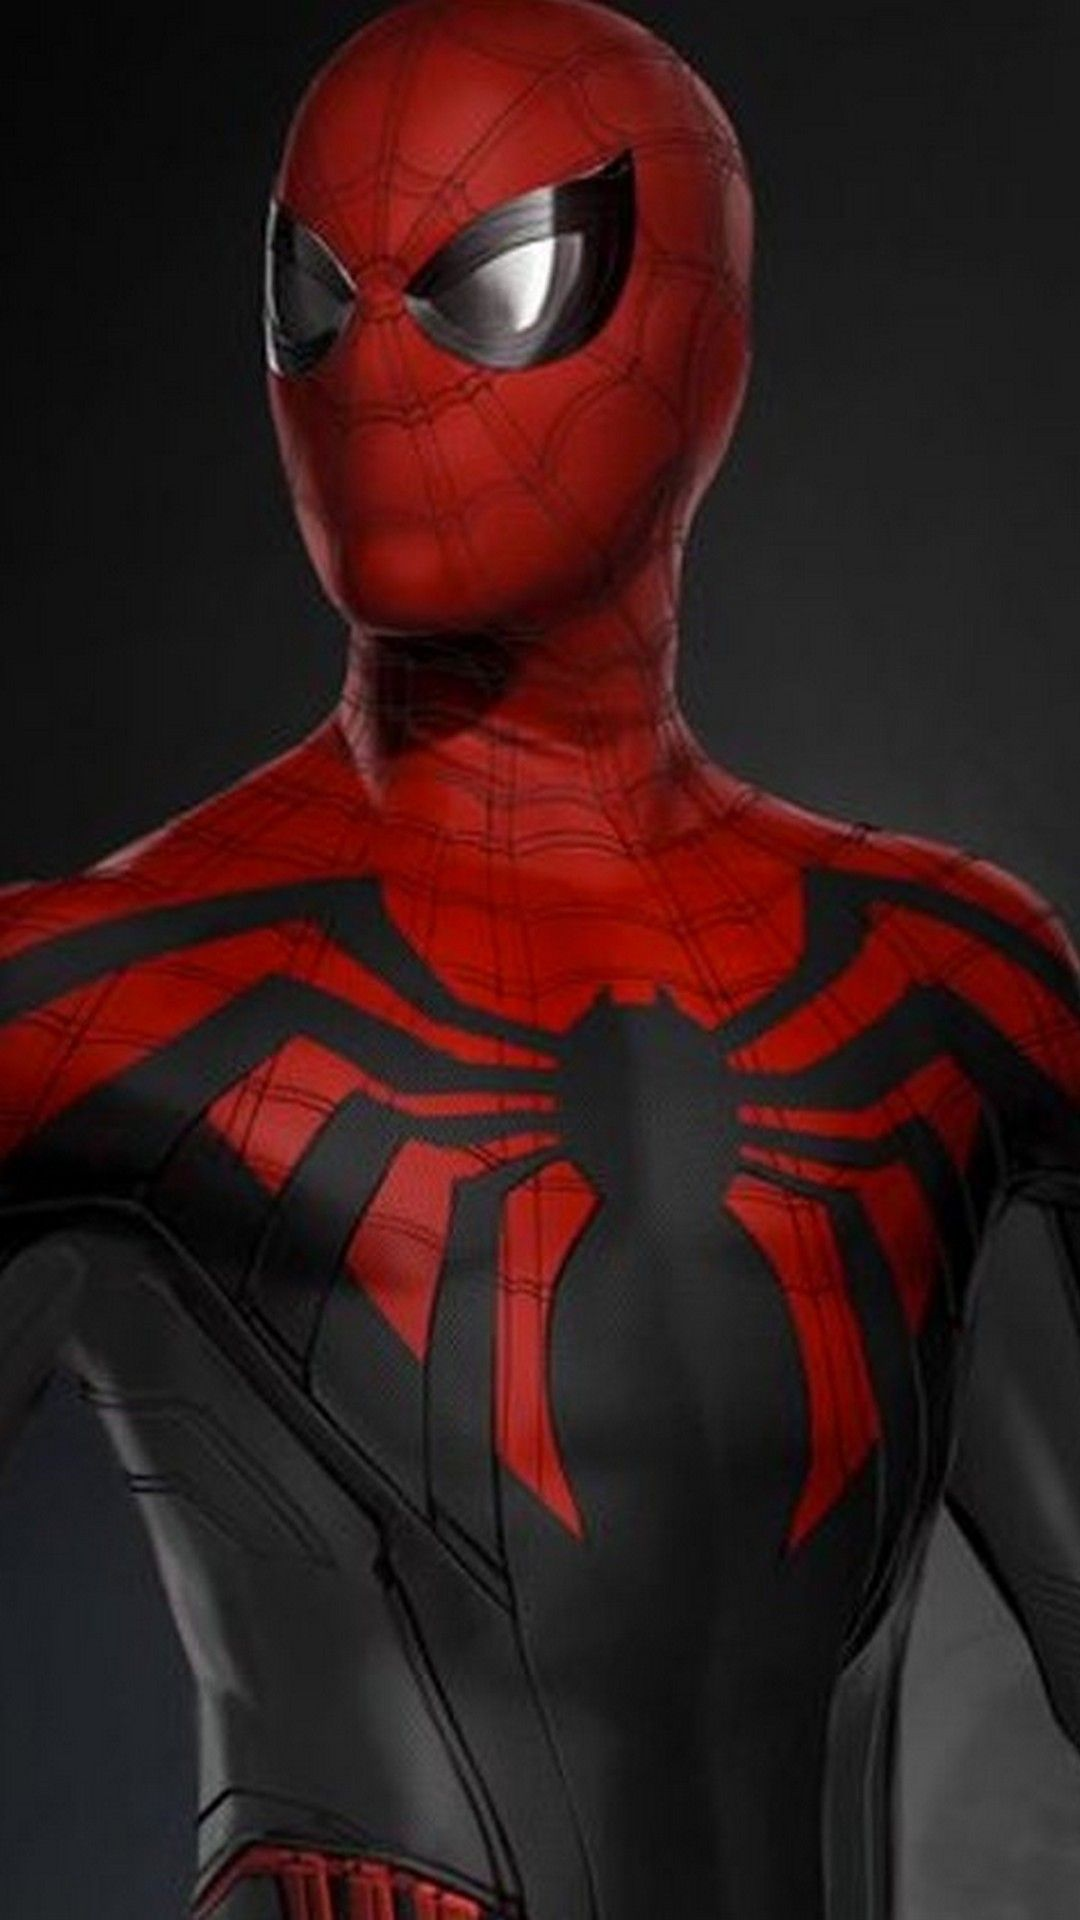 Spider Man Far From Home Iphone X Wallpaper Spiderman Marvel